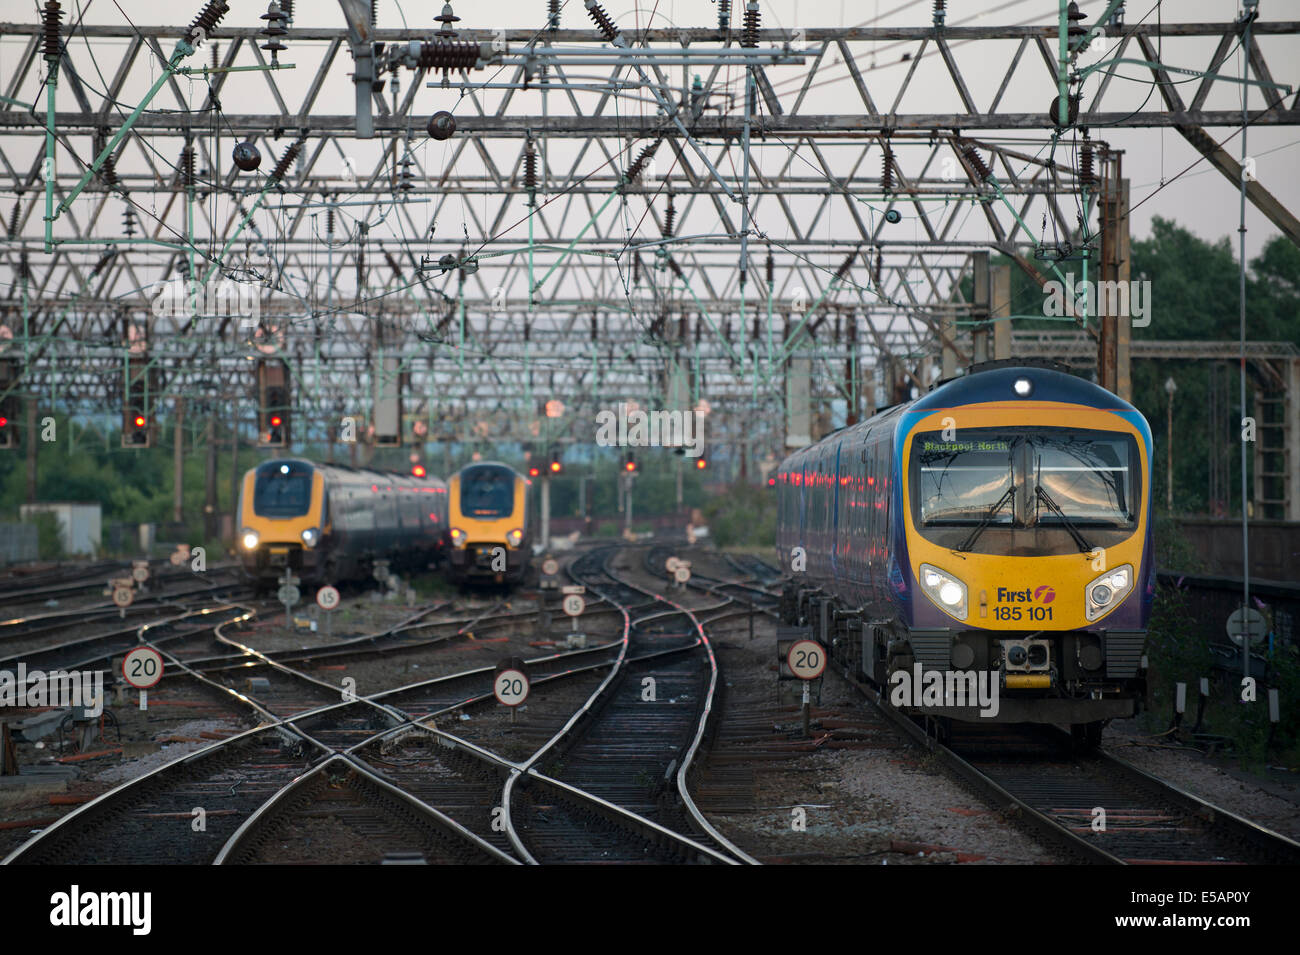 A First TransPennine Express train enters Manchester Piccadilly Rail Station as a Cross Country and Arriva train - Stock Image